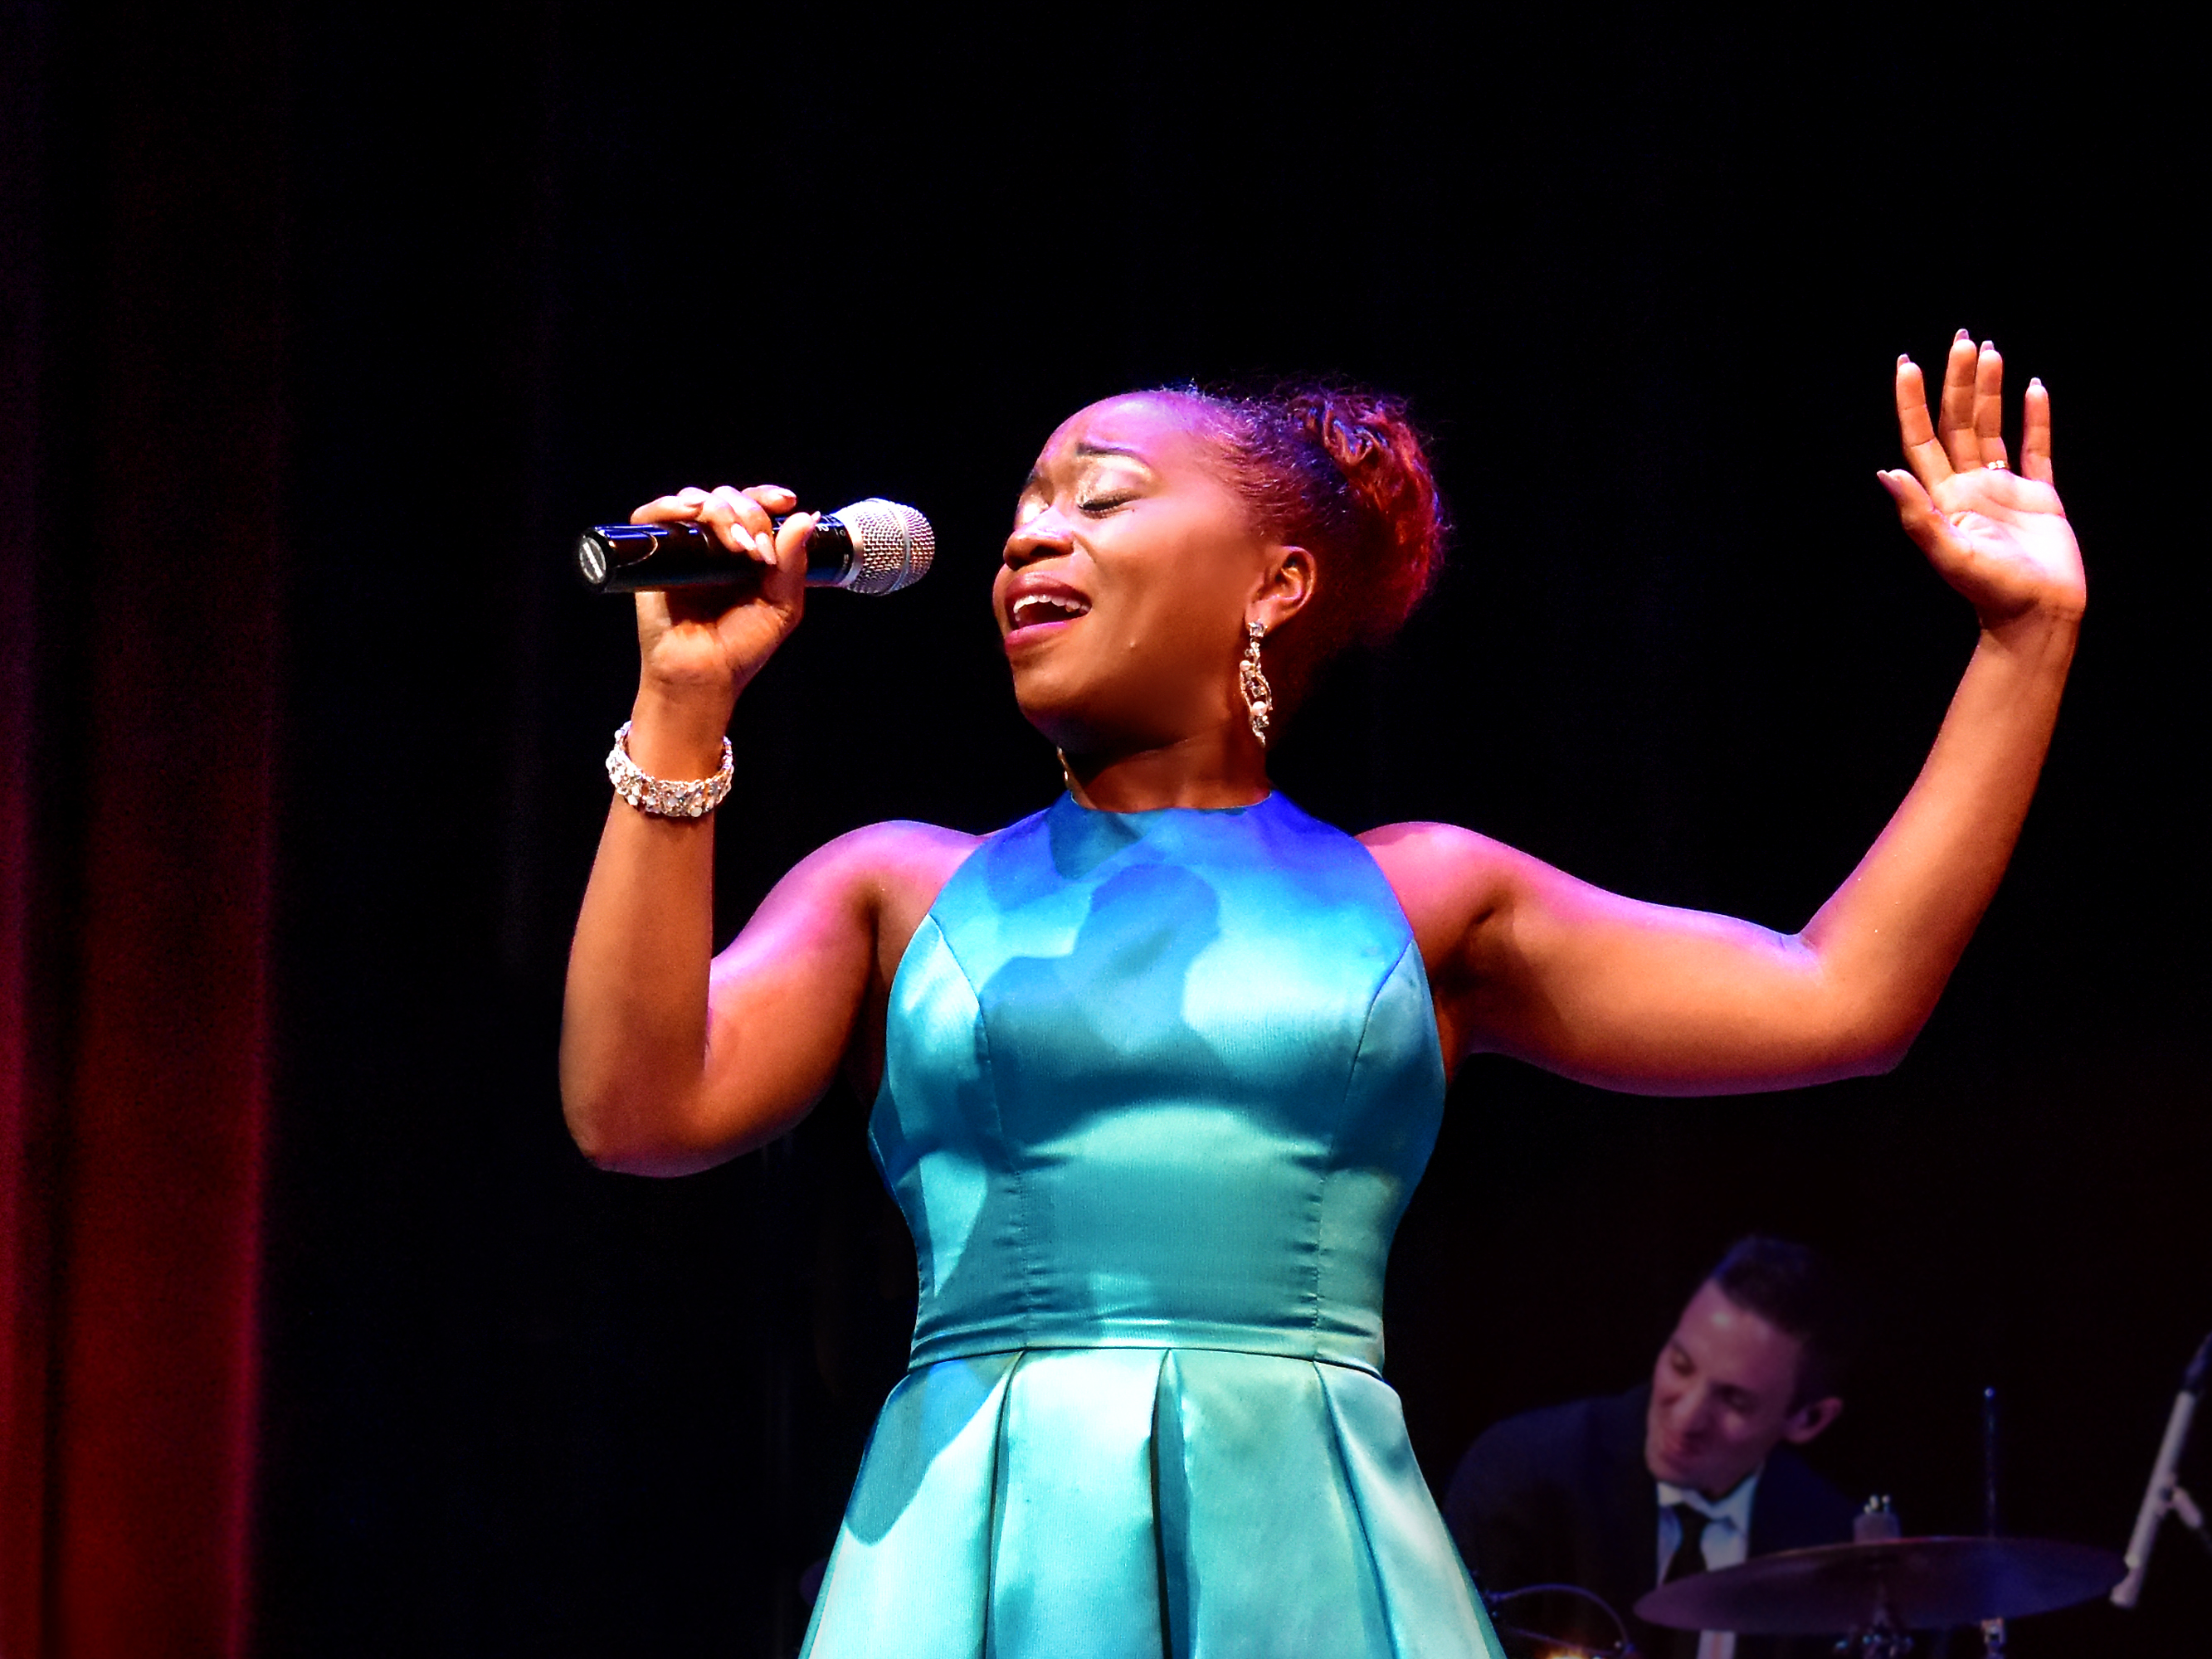 First Lady of Song: Alexis J Roston Sings Ella Fitzgerald starring Alexis J Roston. Presented by Artists Lounge Live. Photo by JPM Photography.